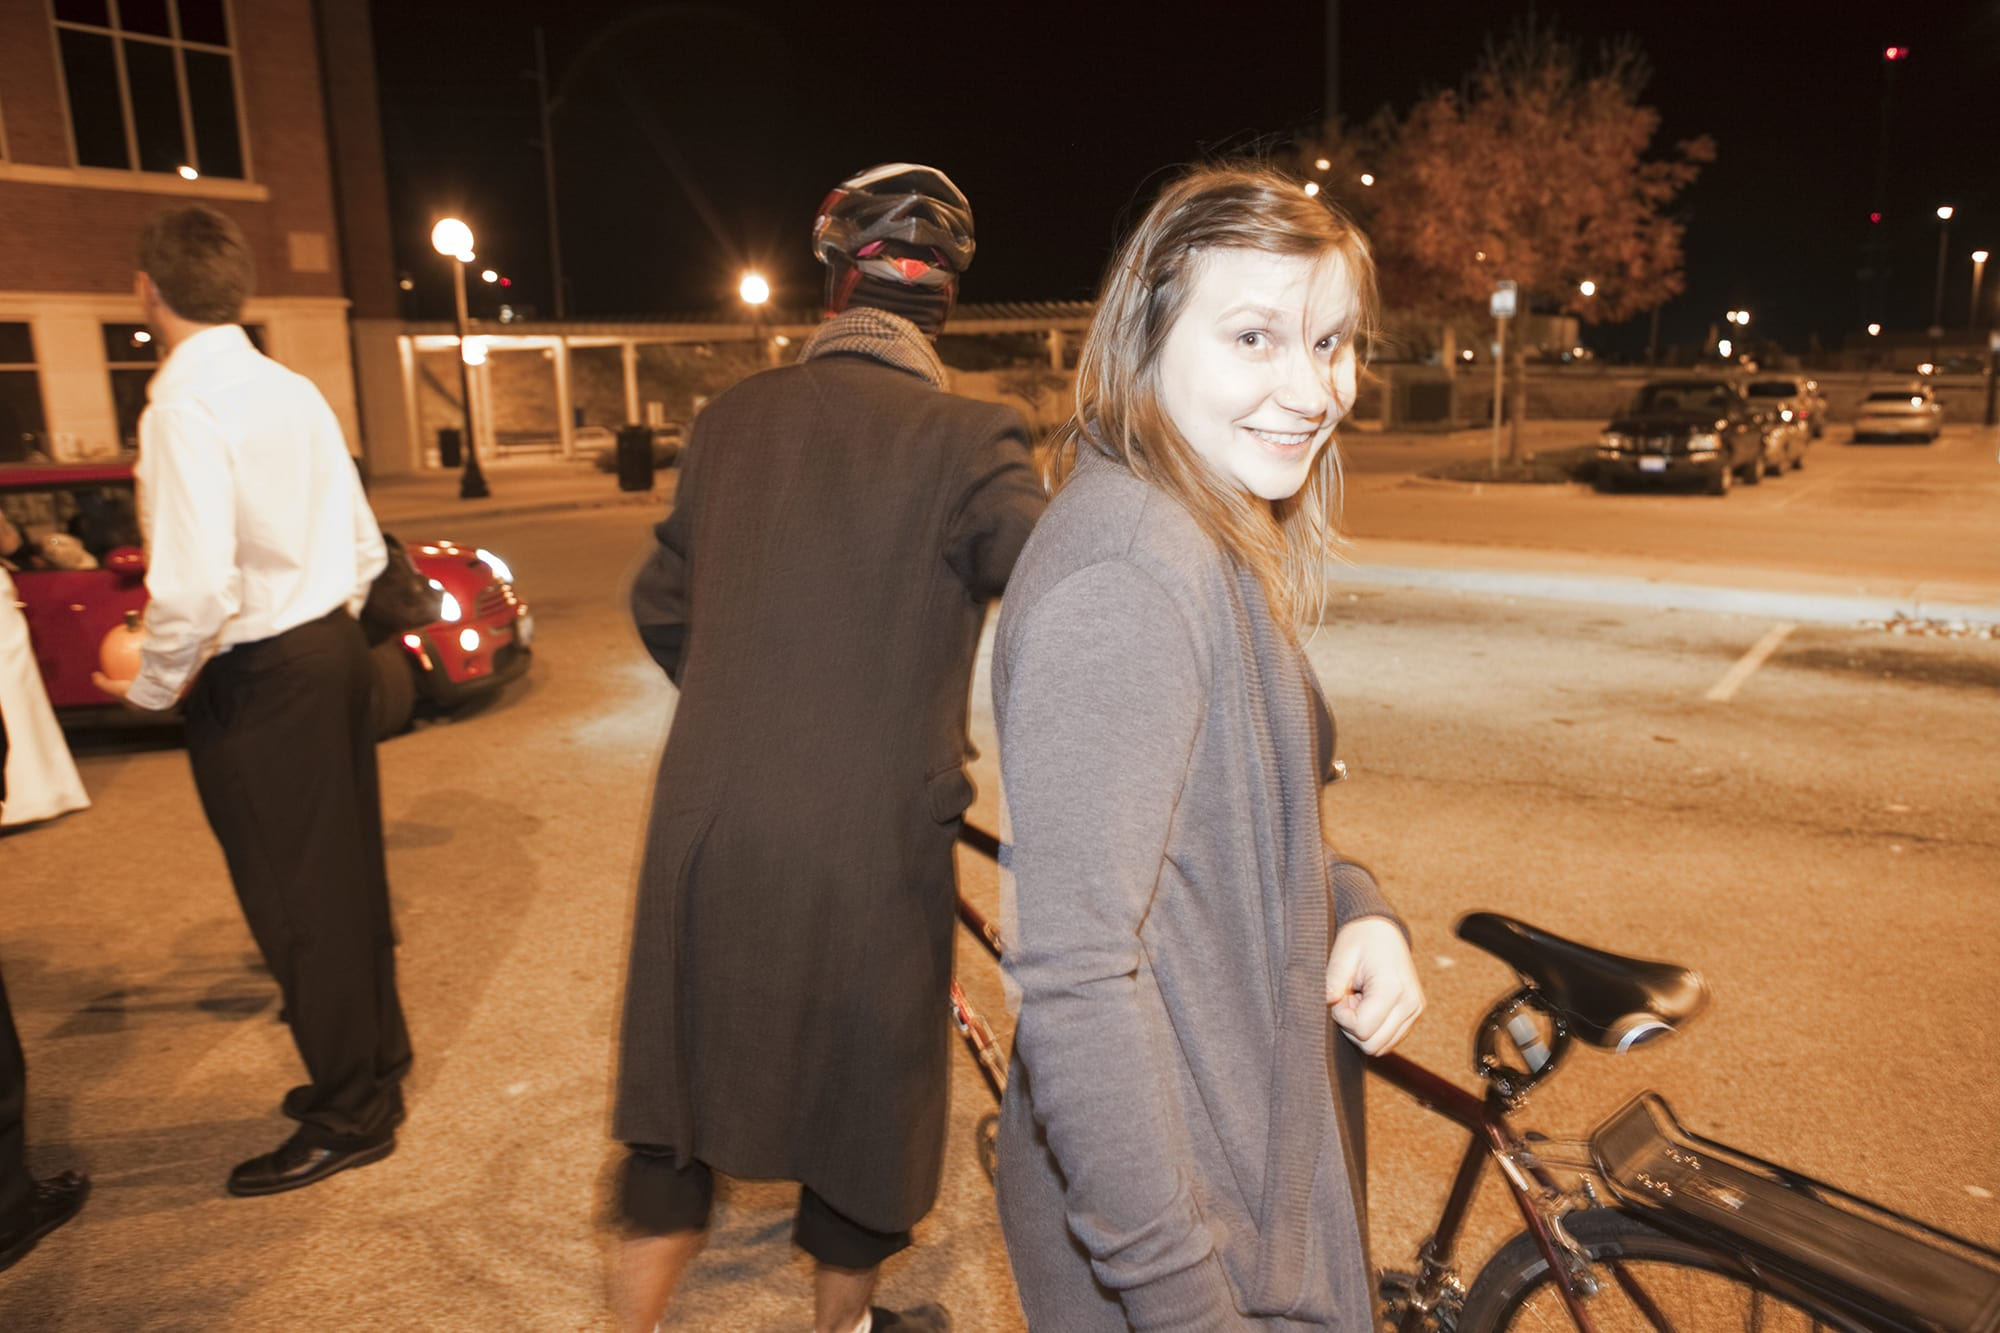 Riding on a bicycle built for two at Jen and Andrews wedding